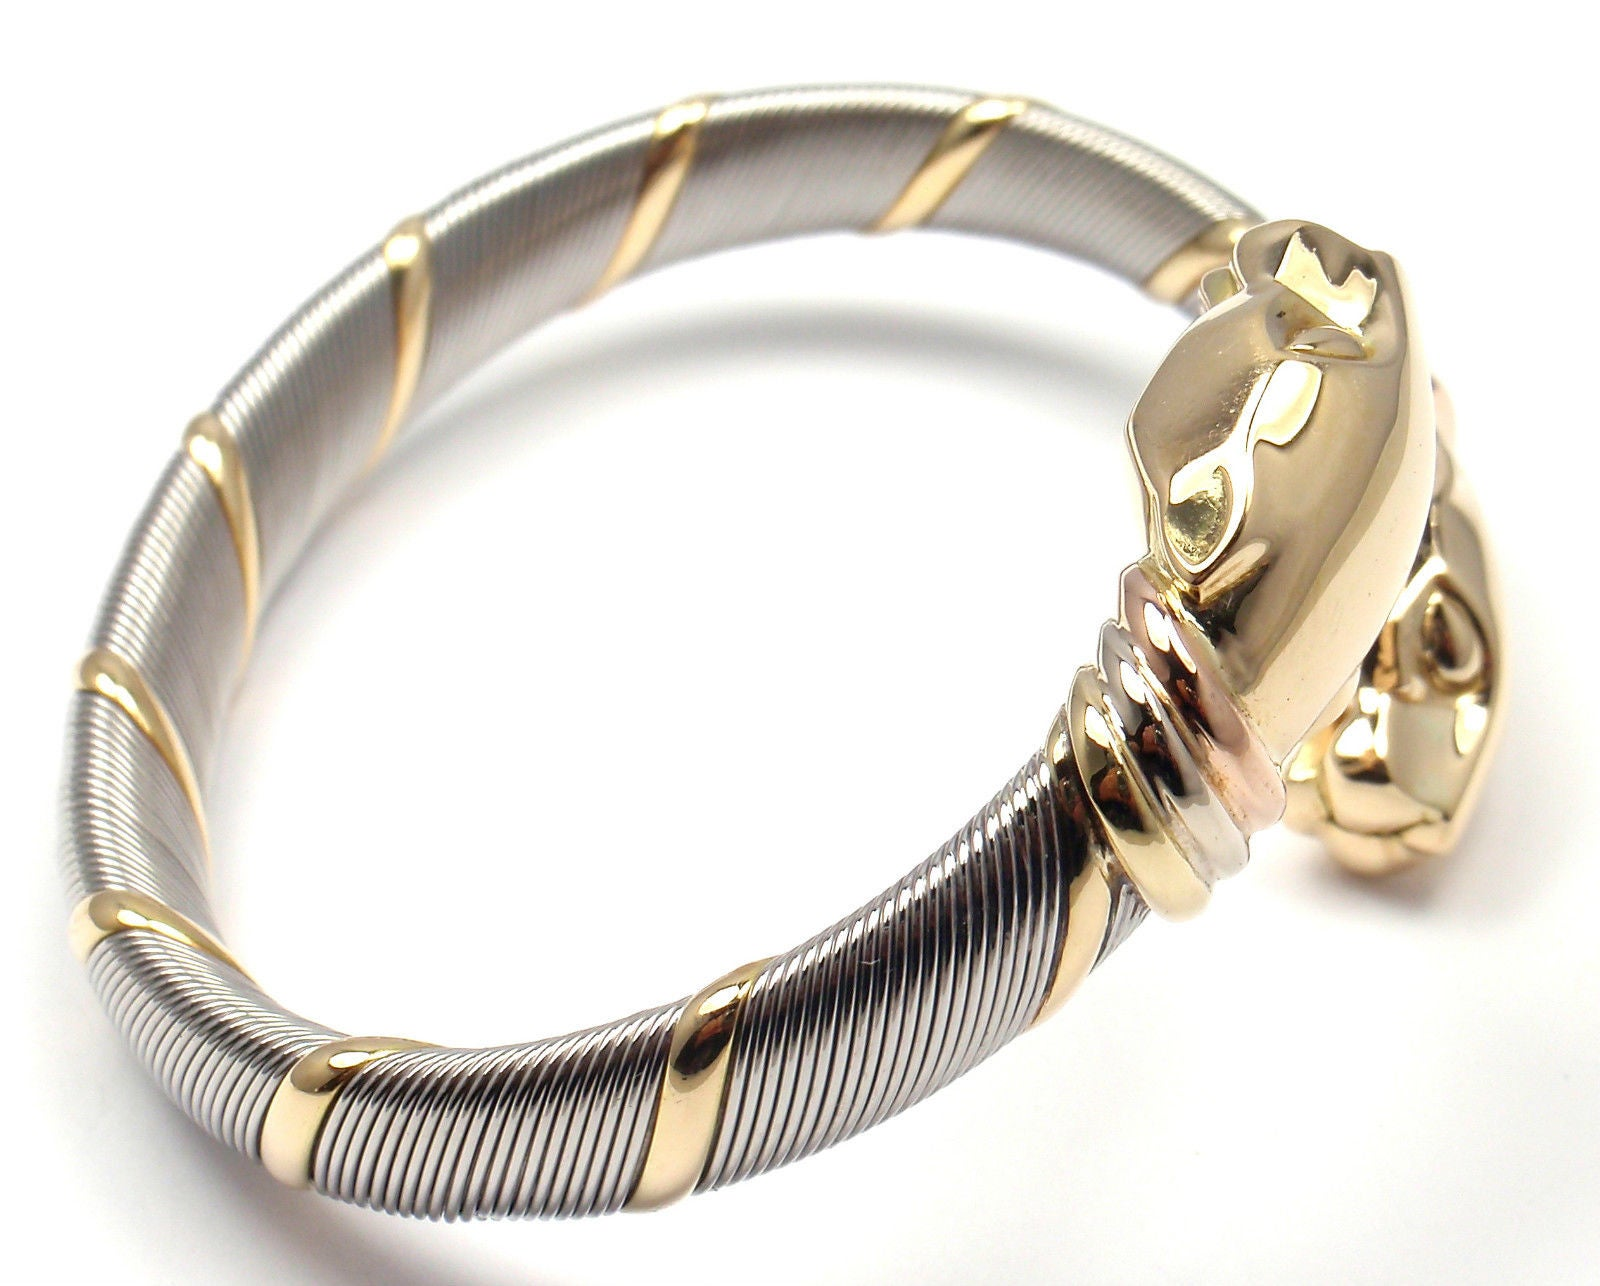 7a9d670675dc2 Cartier Panthere Stainless Steel Tricolor Gold Bangle Bracelet